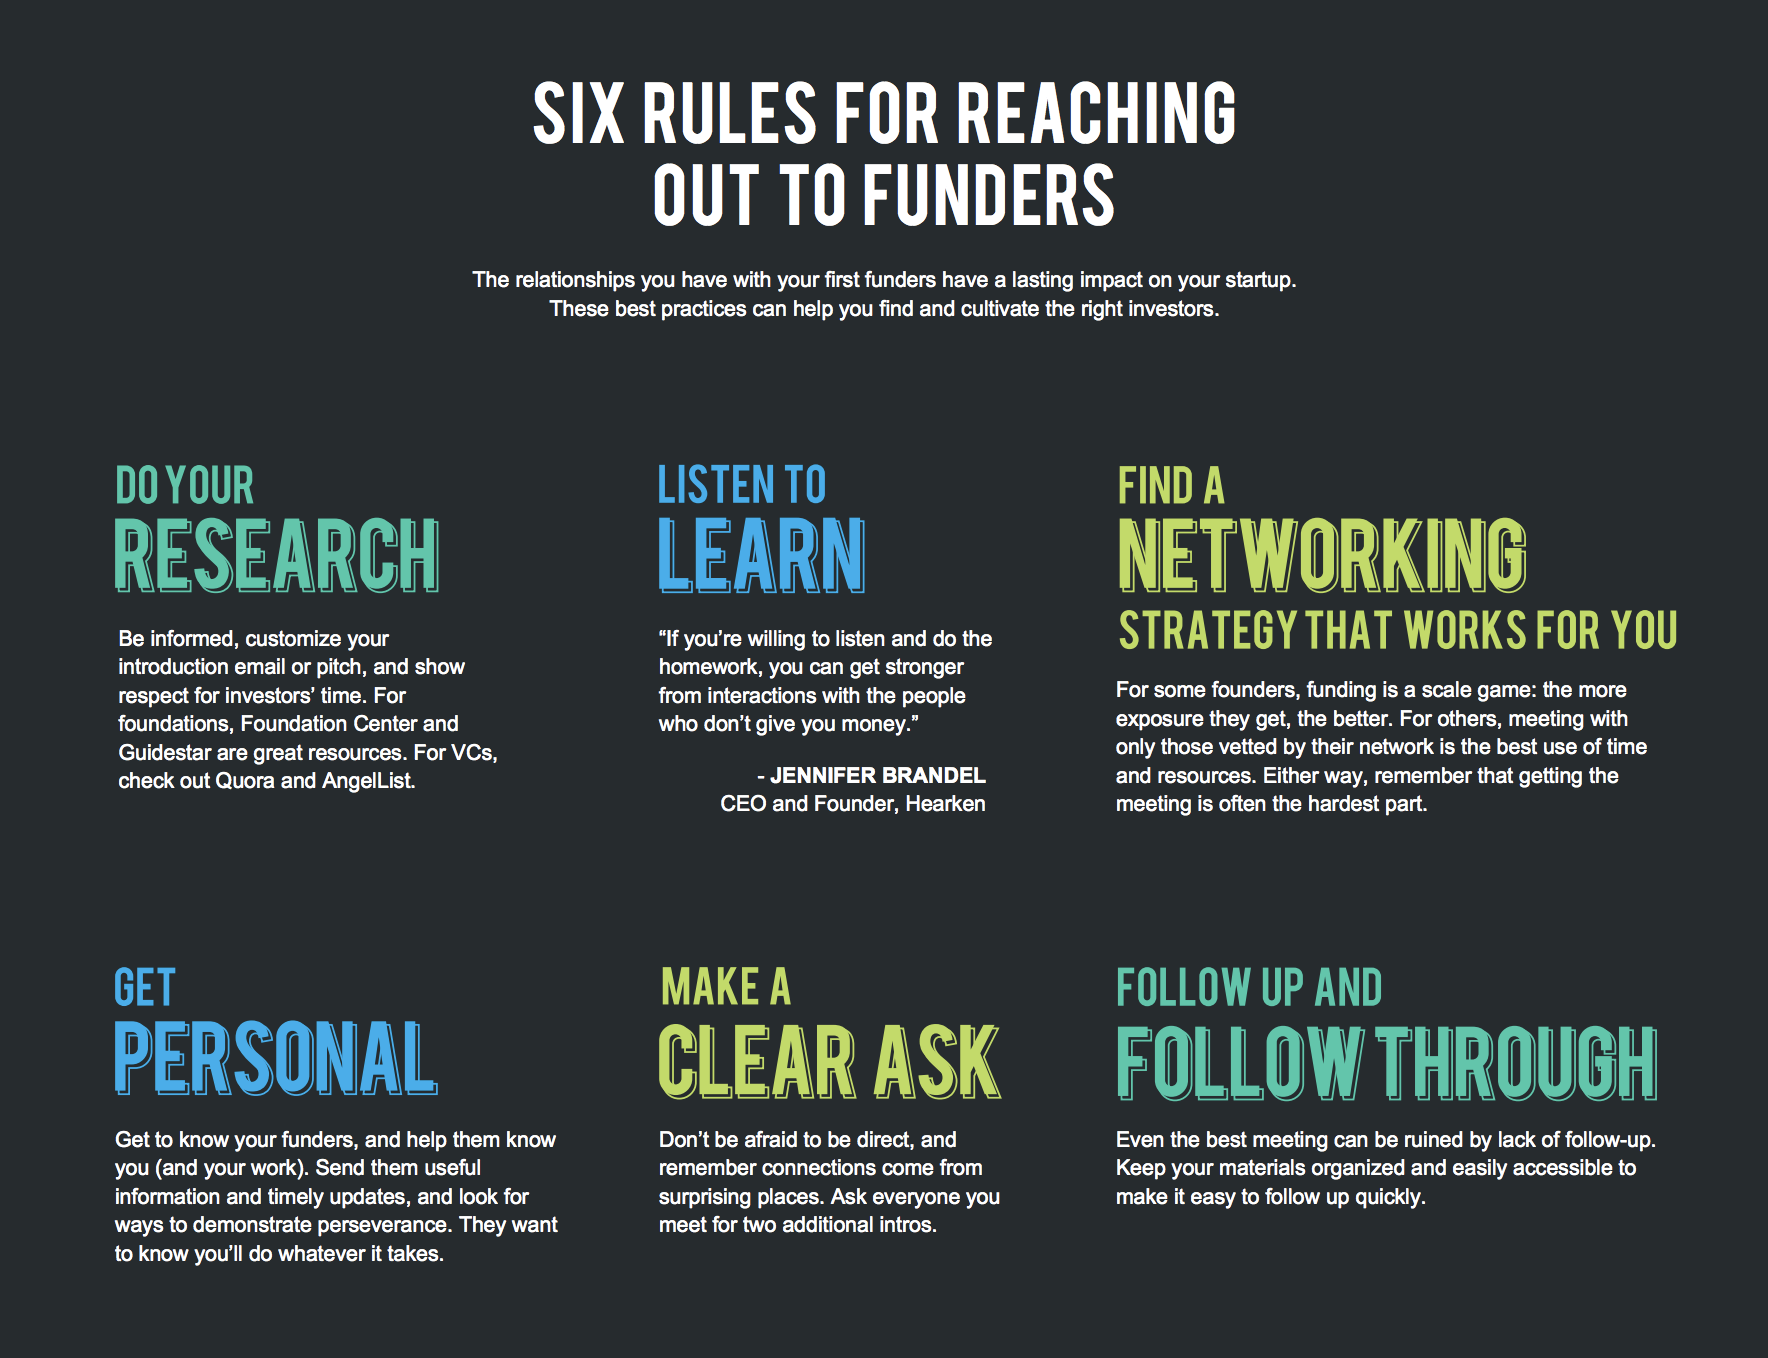 Six Rules for Reaching Out to Funders - New Media Ventures